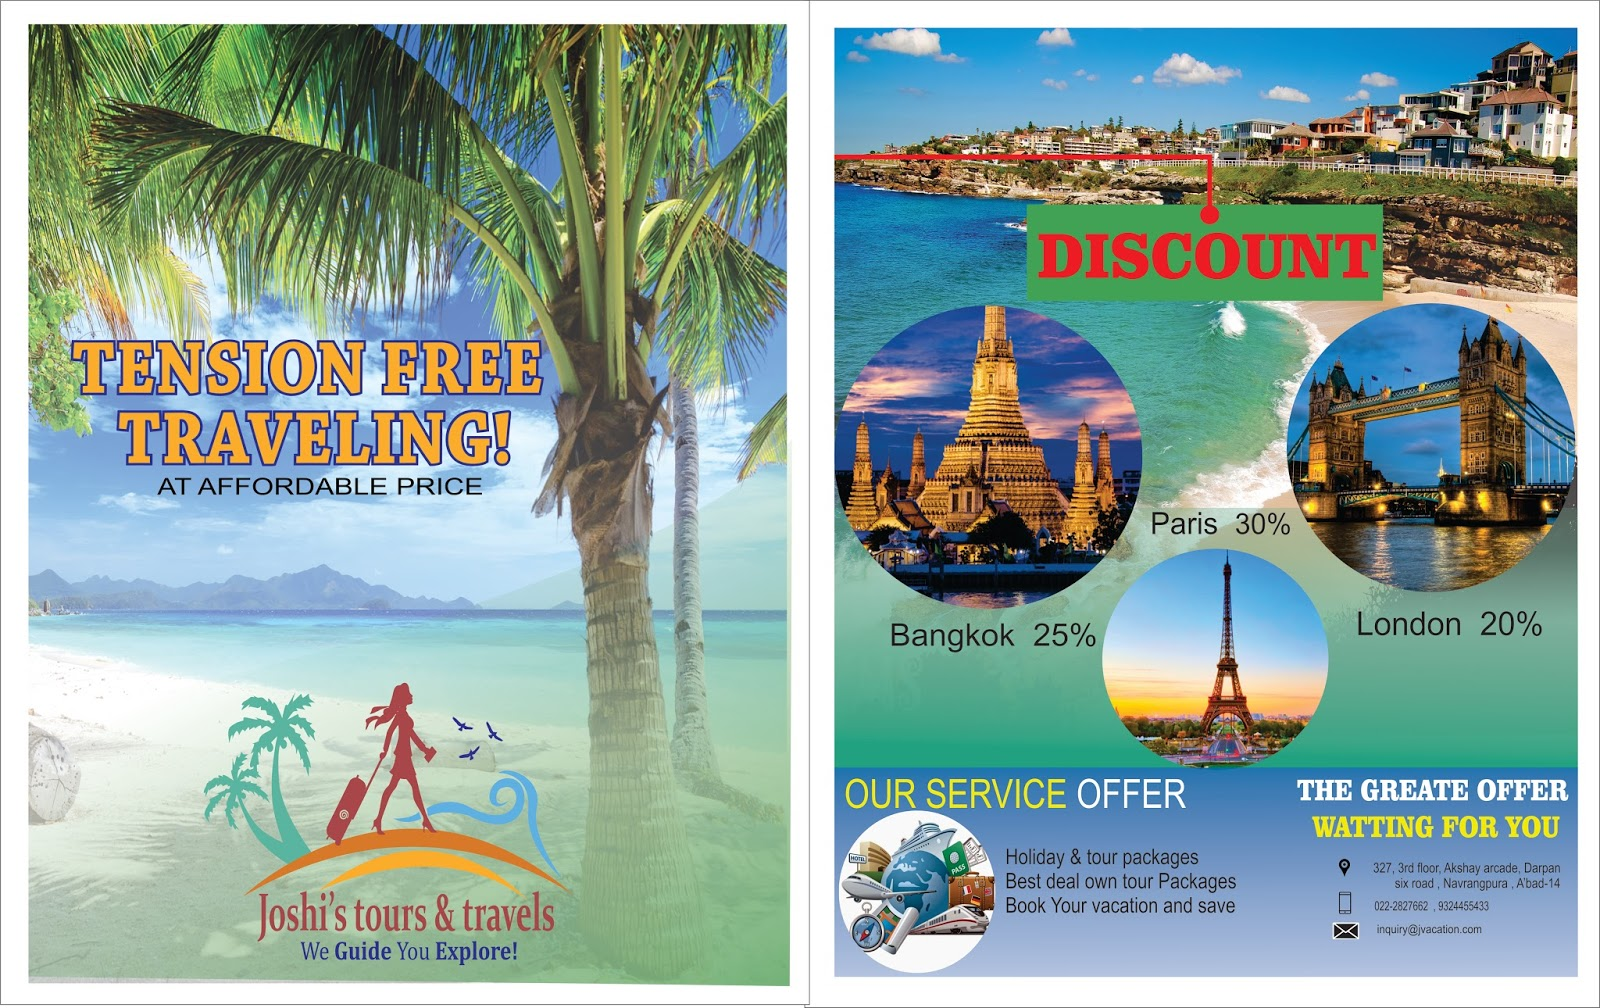 Flyer Design In Coreldraw For Project Of Travelling Company